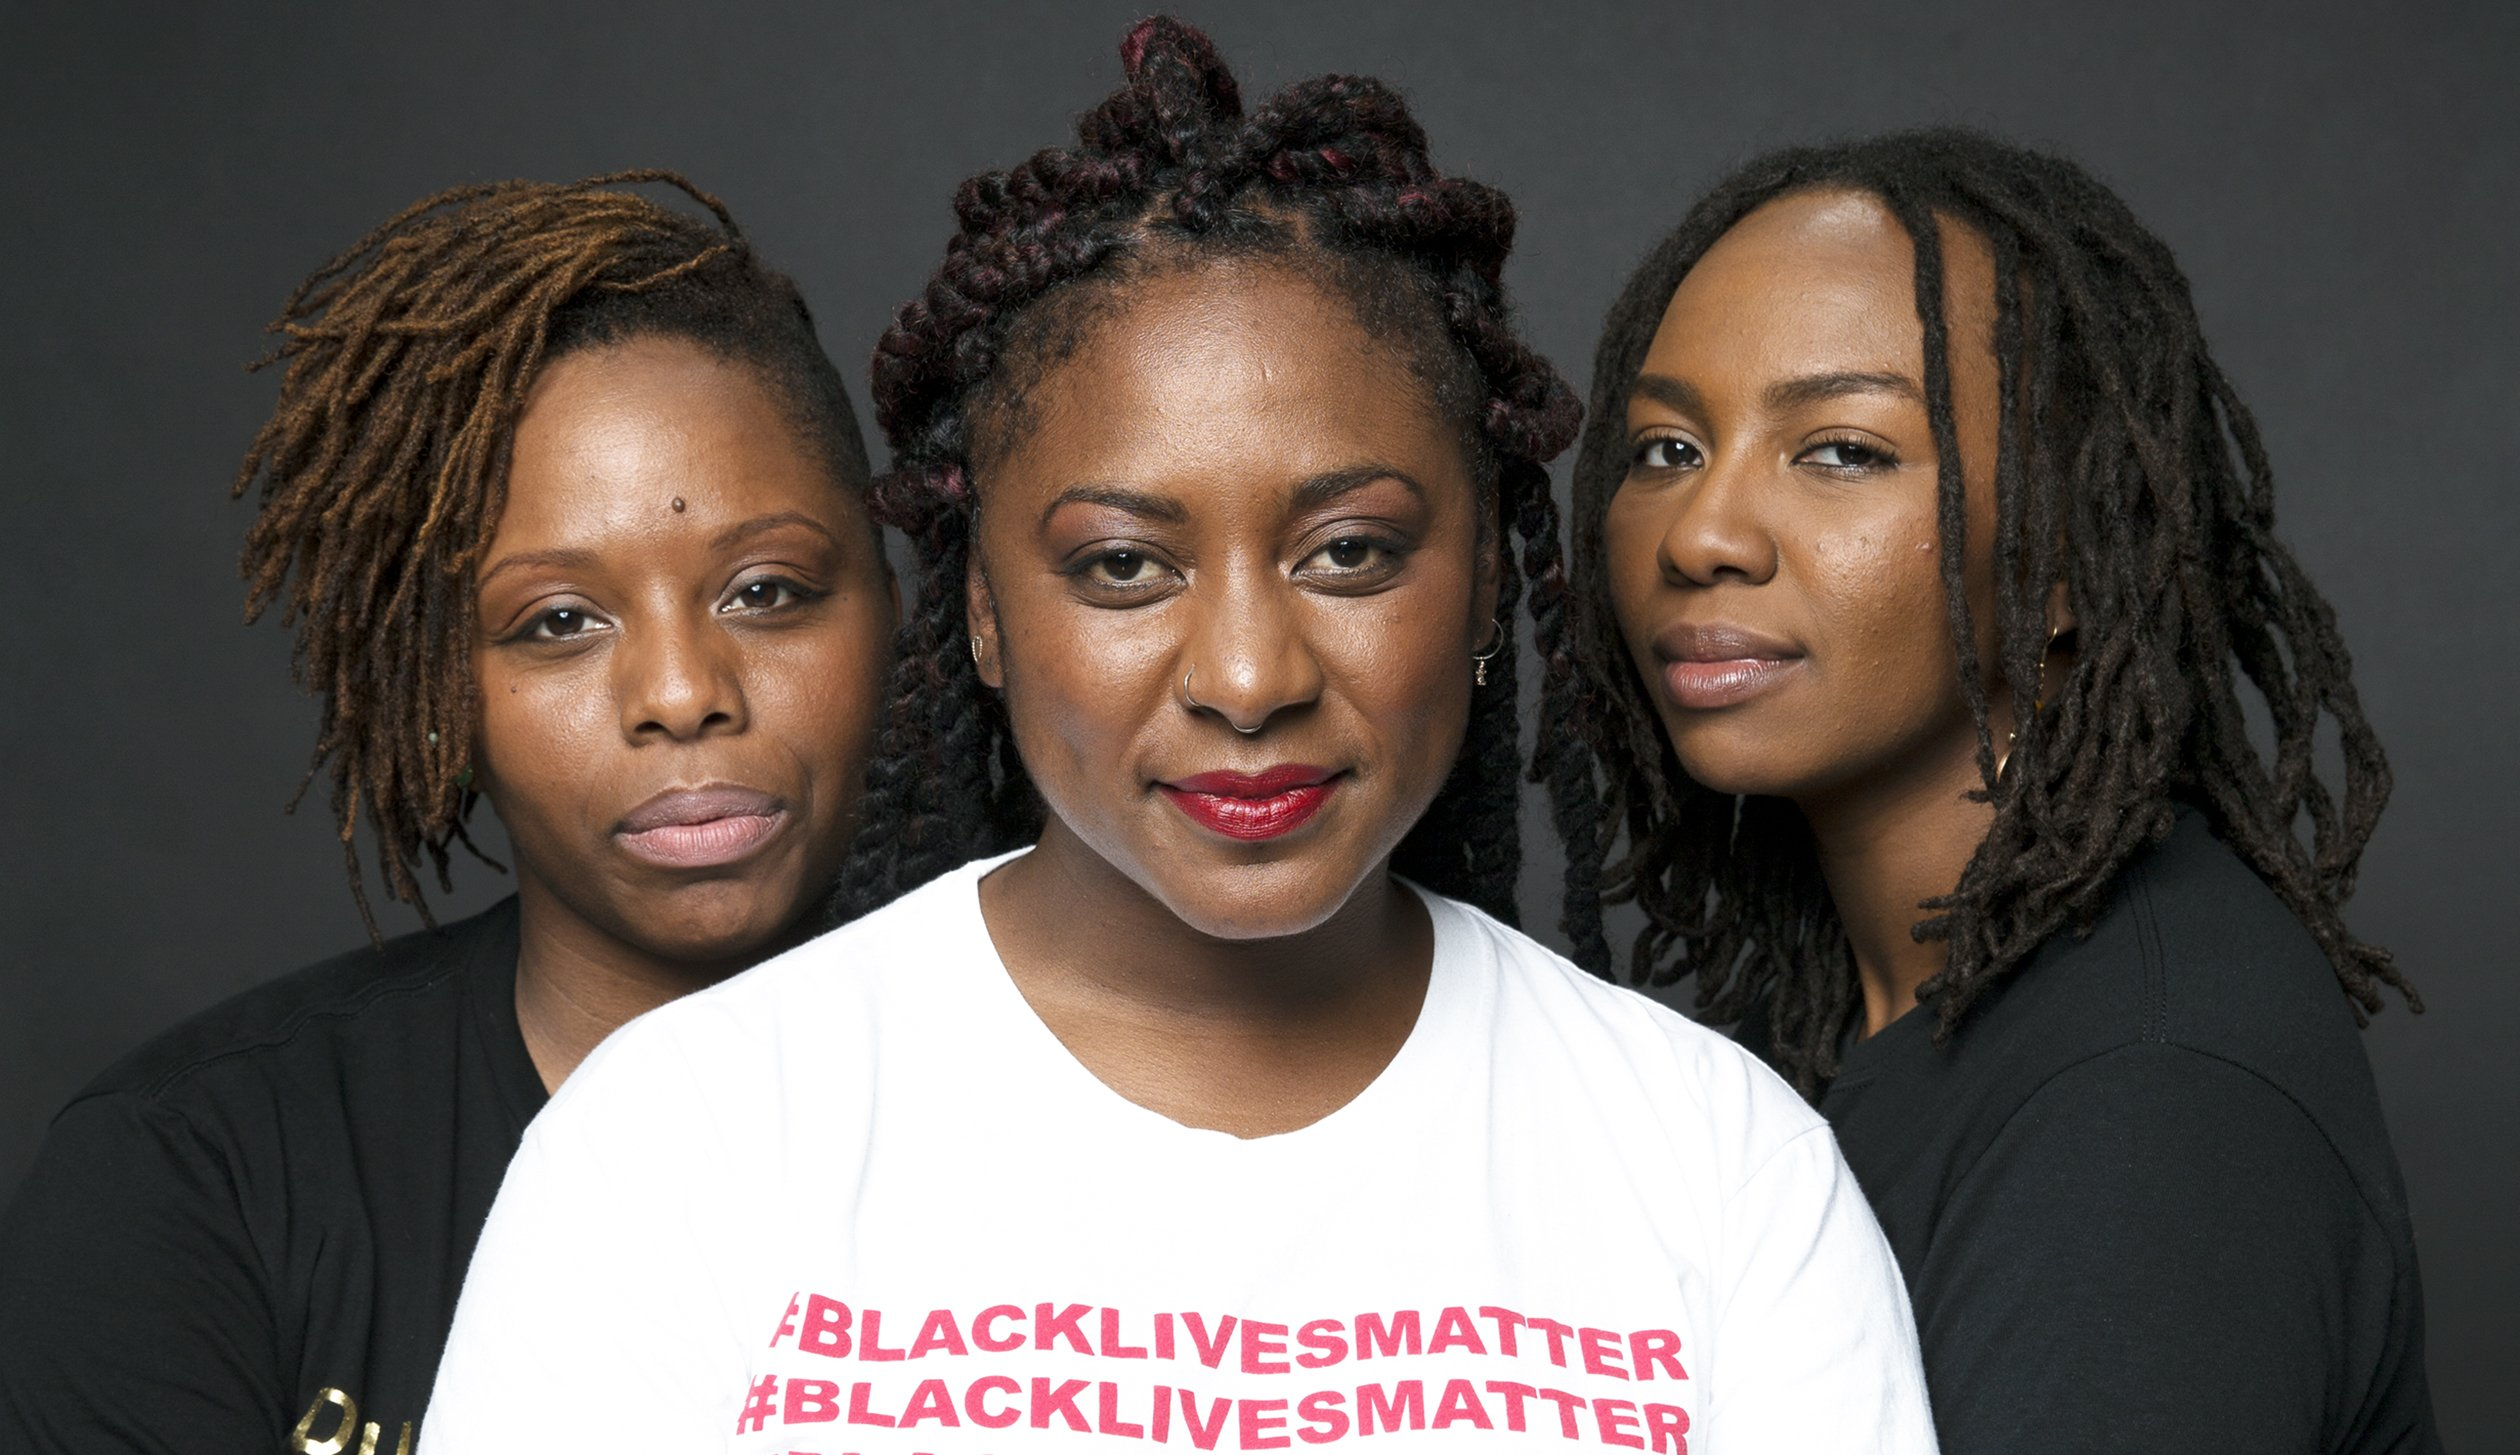 Why the Black Lives Matter Founders Are Great Leaders | Fortune